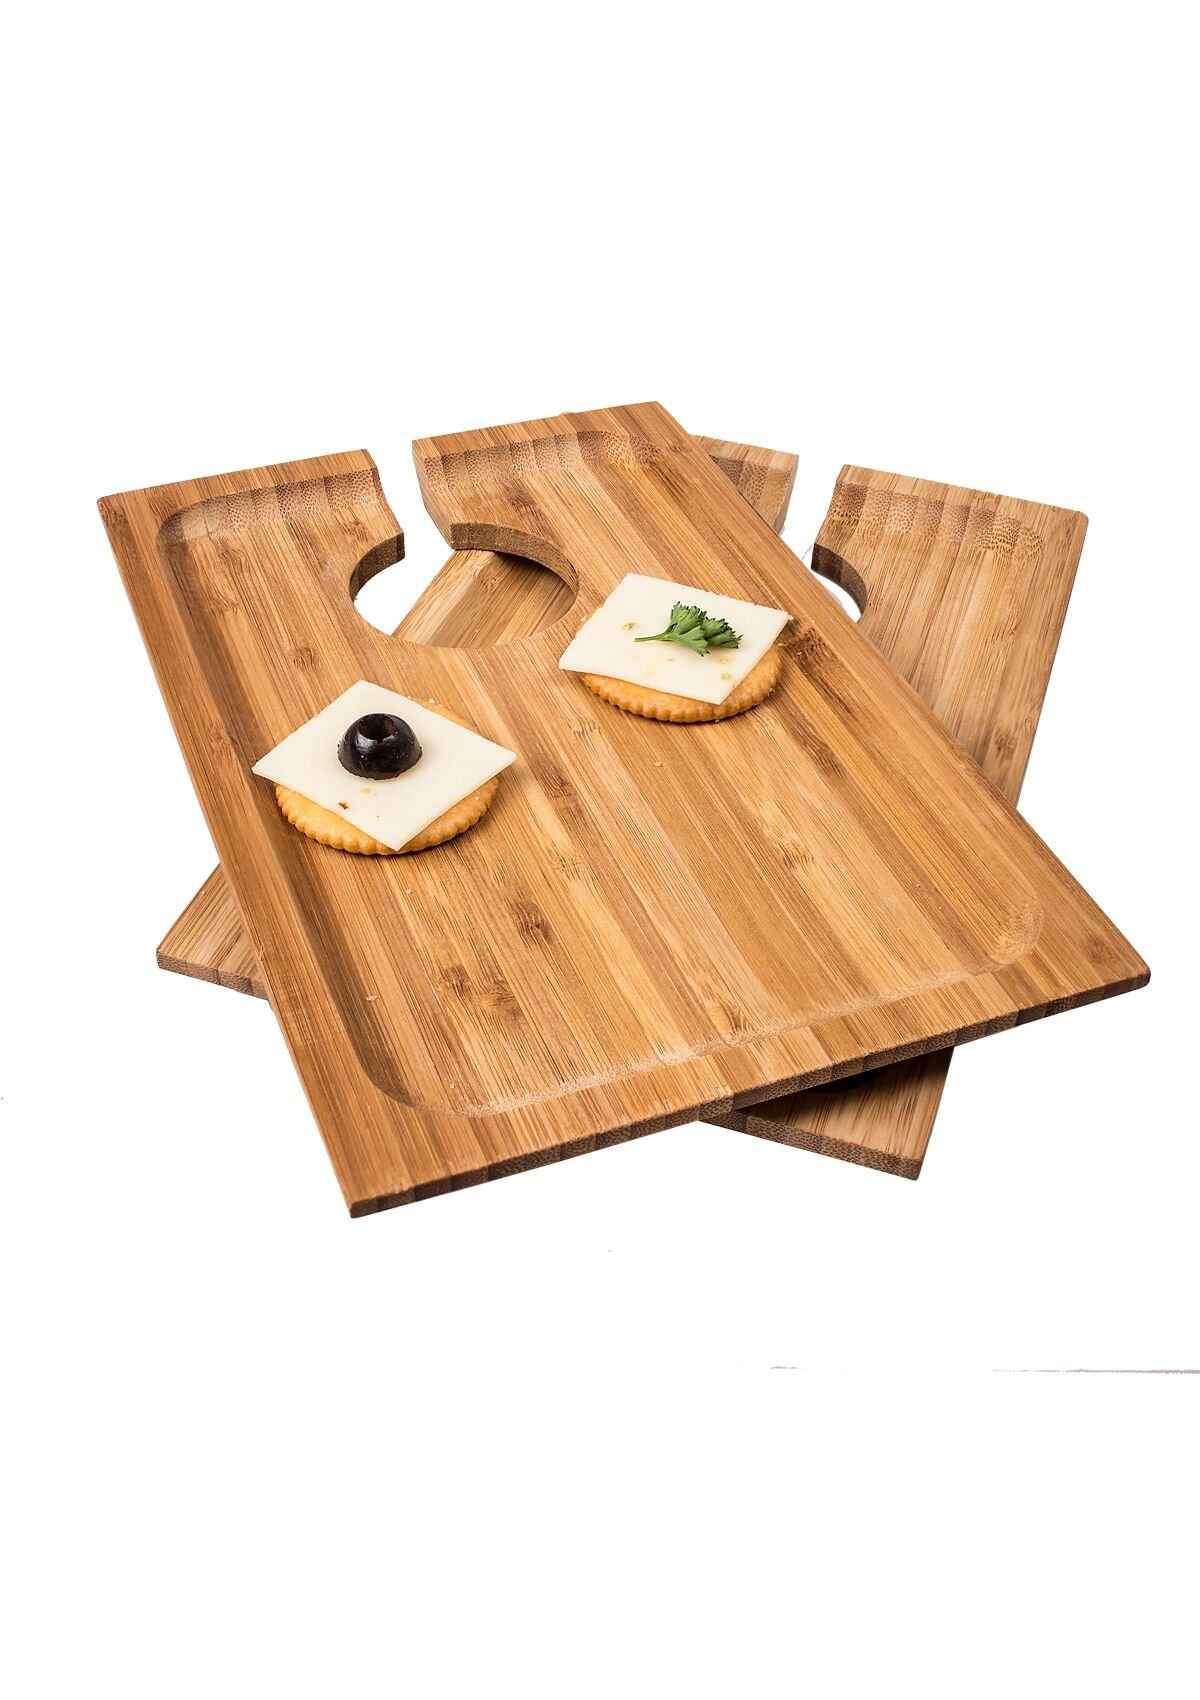 Cathys Concepts 2295 Wine & Dine Appetizer Tray, Set of 2